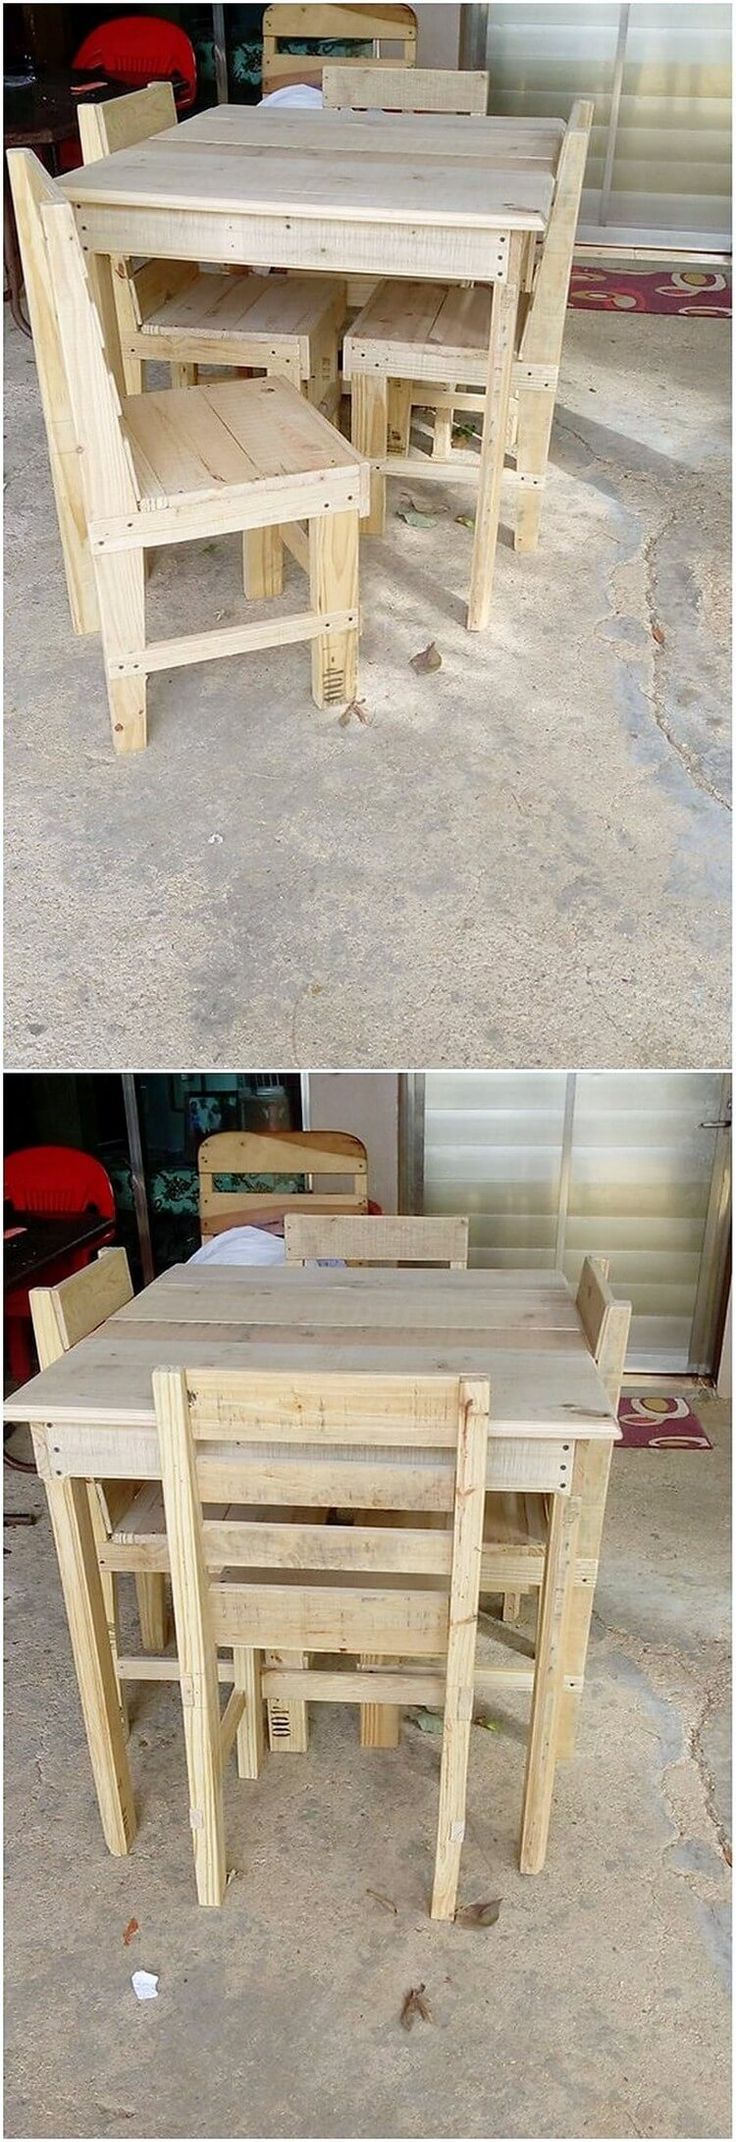 Spectacular Wood Shipping Pallet Ideas That You'll Love to Make